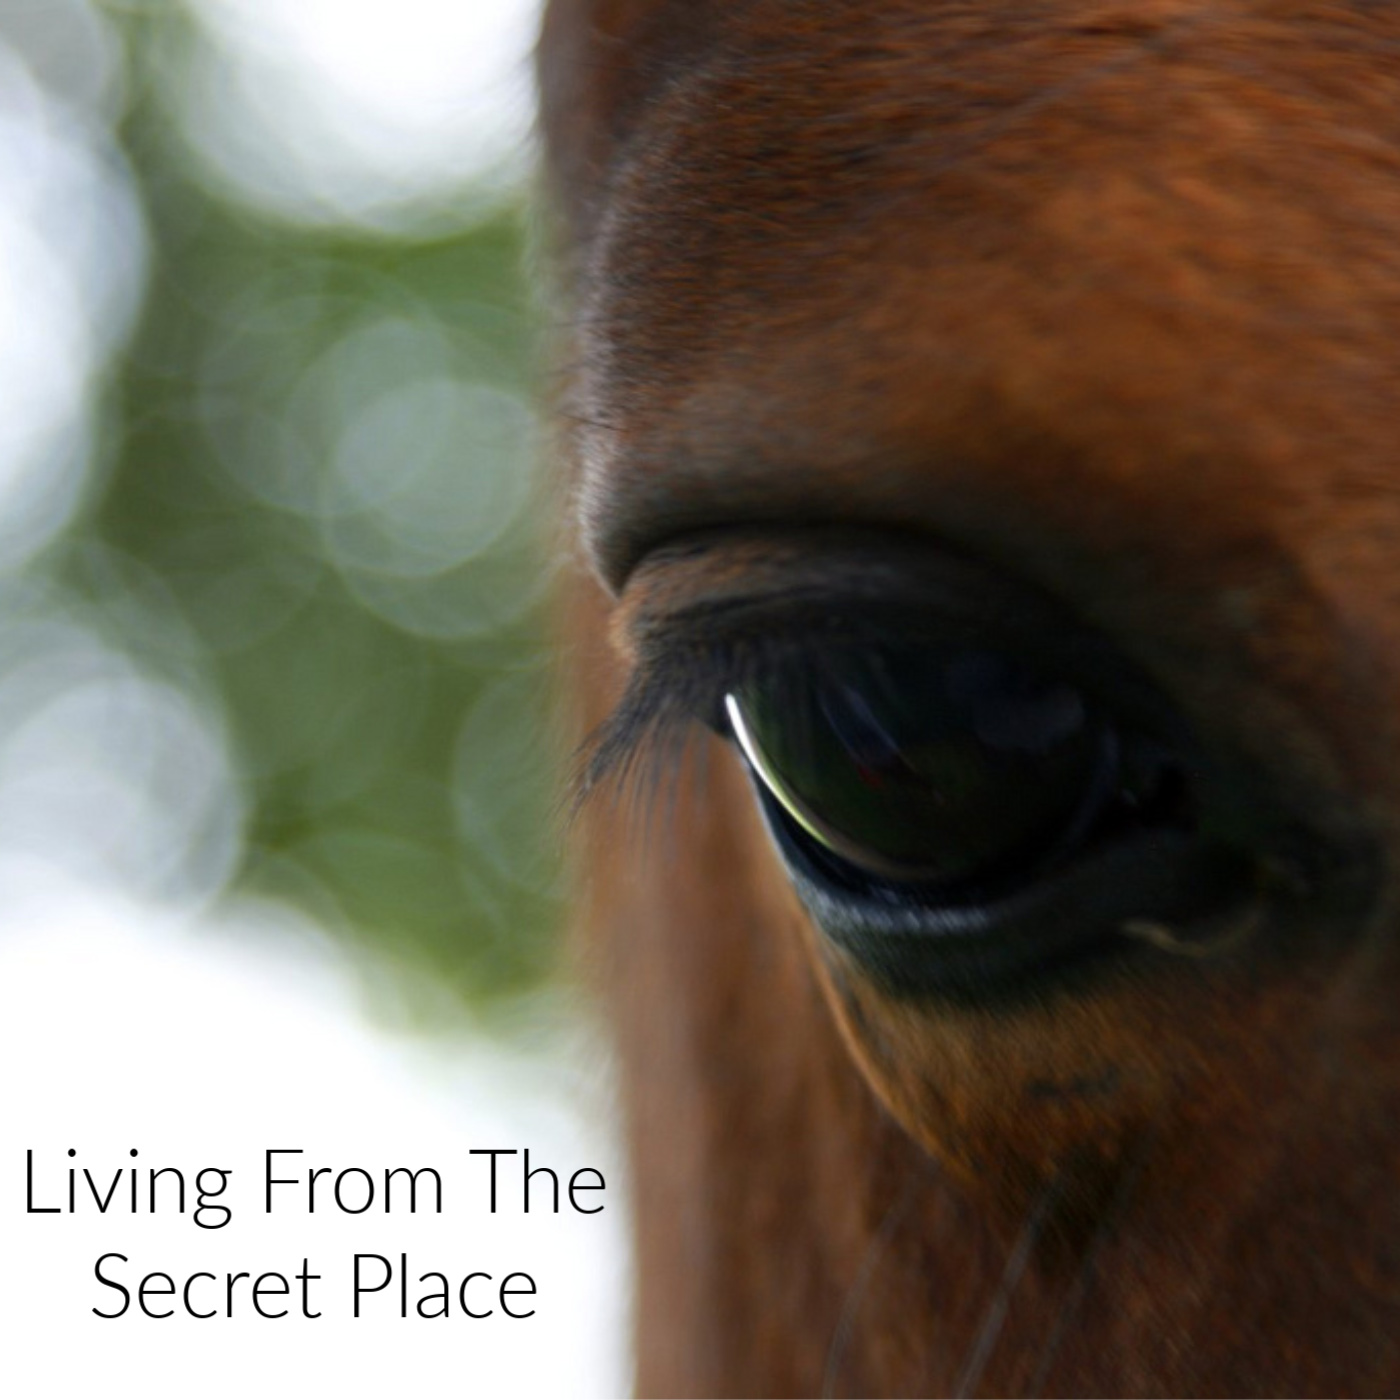 Living From the Secret Place show image